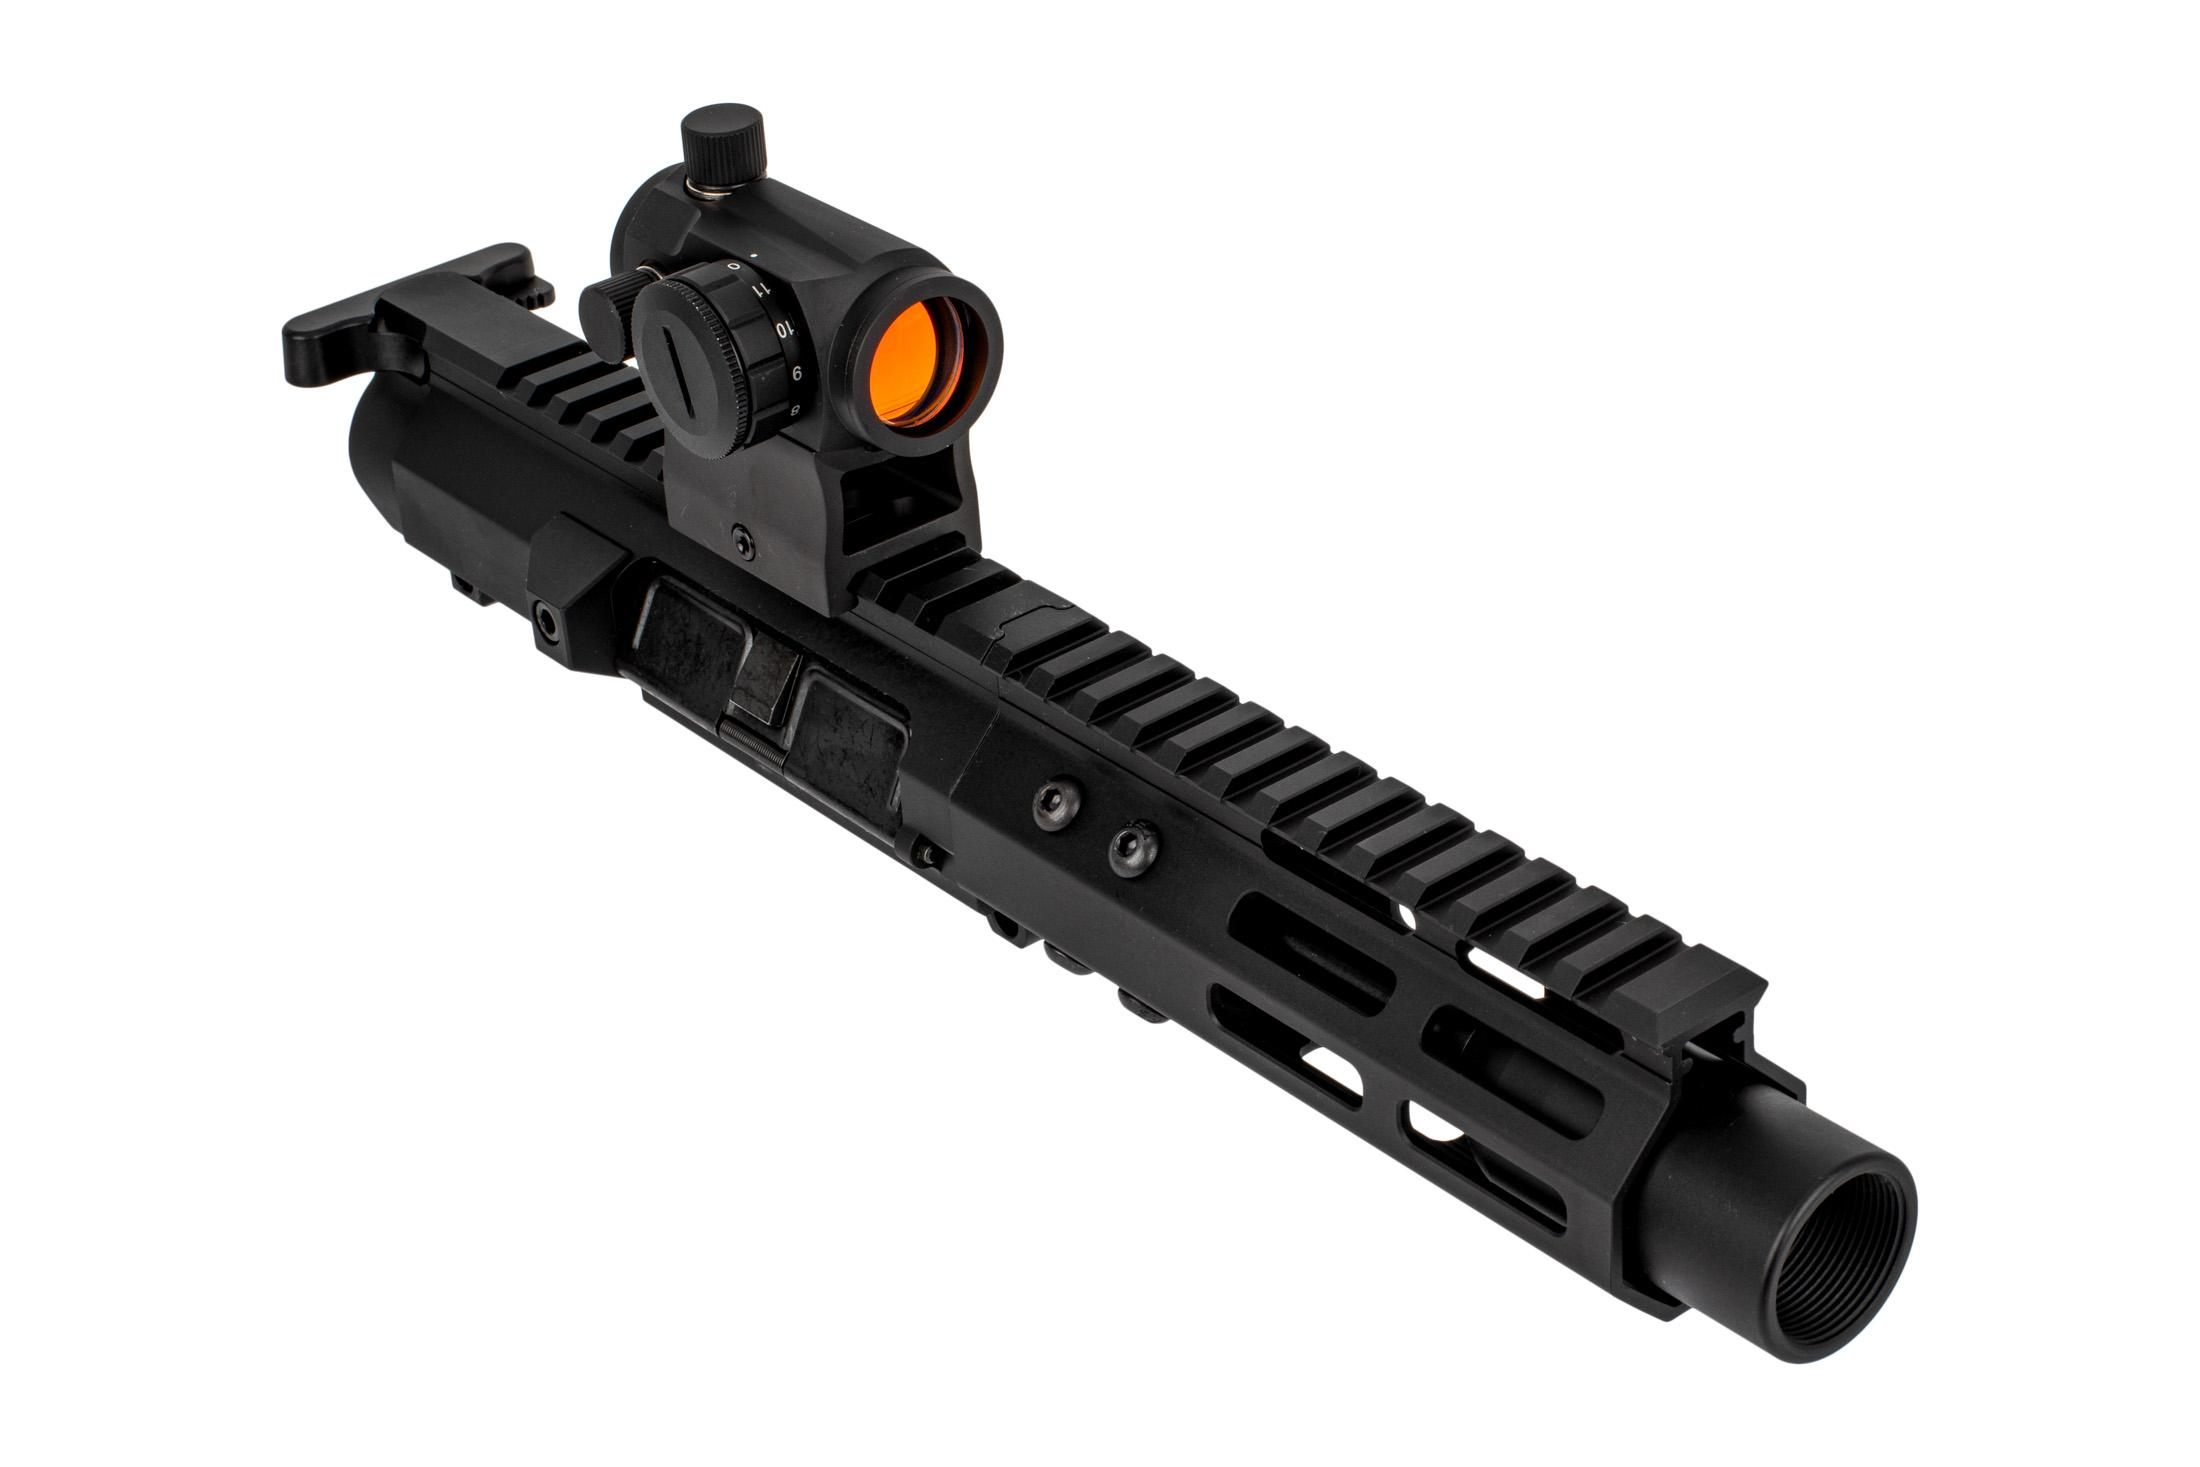 Buy 5 FM Products Glock Style 9mm Upper Get Free Primary Arms Red Dot